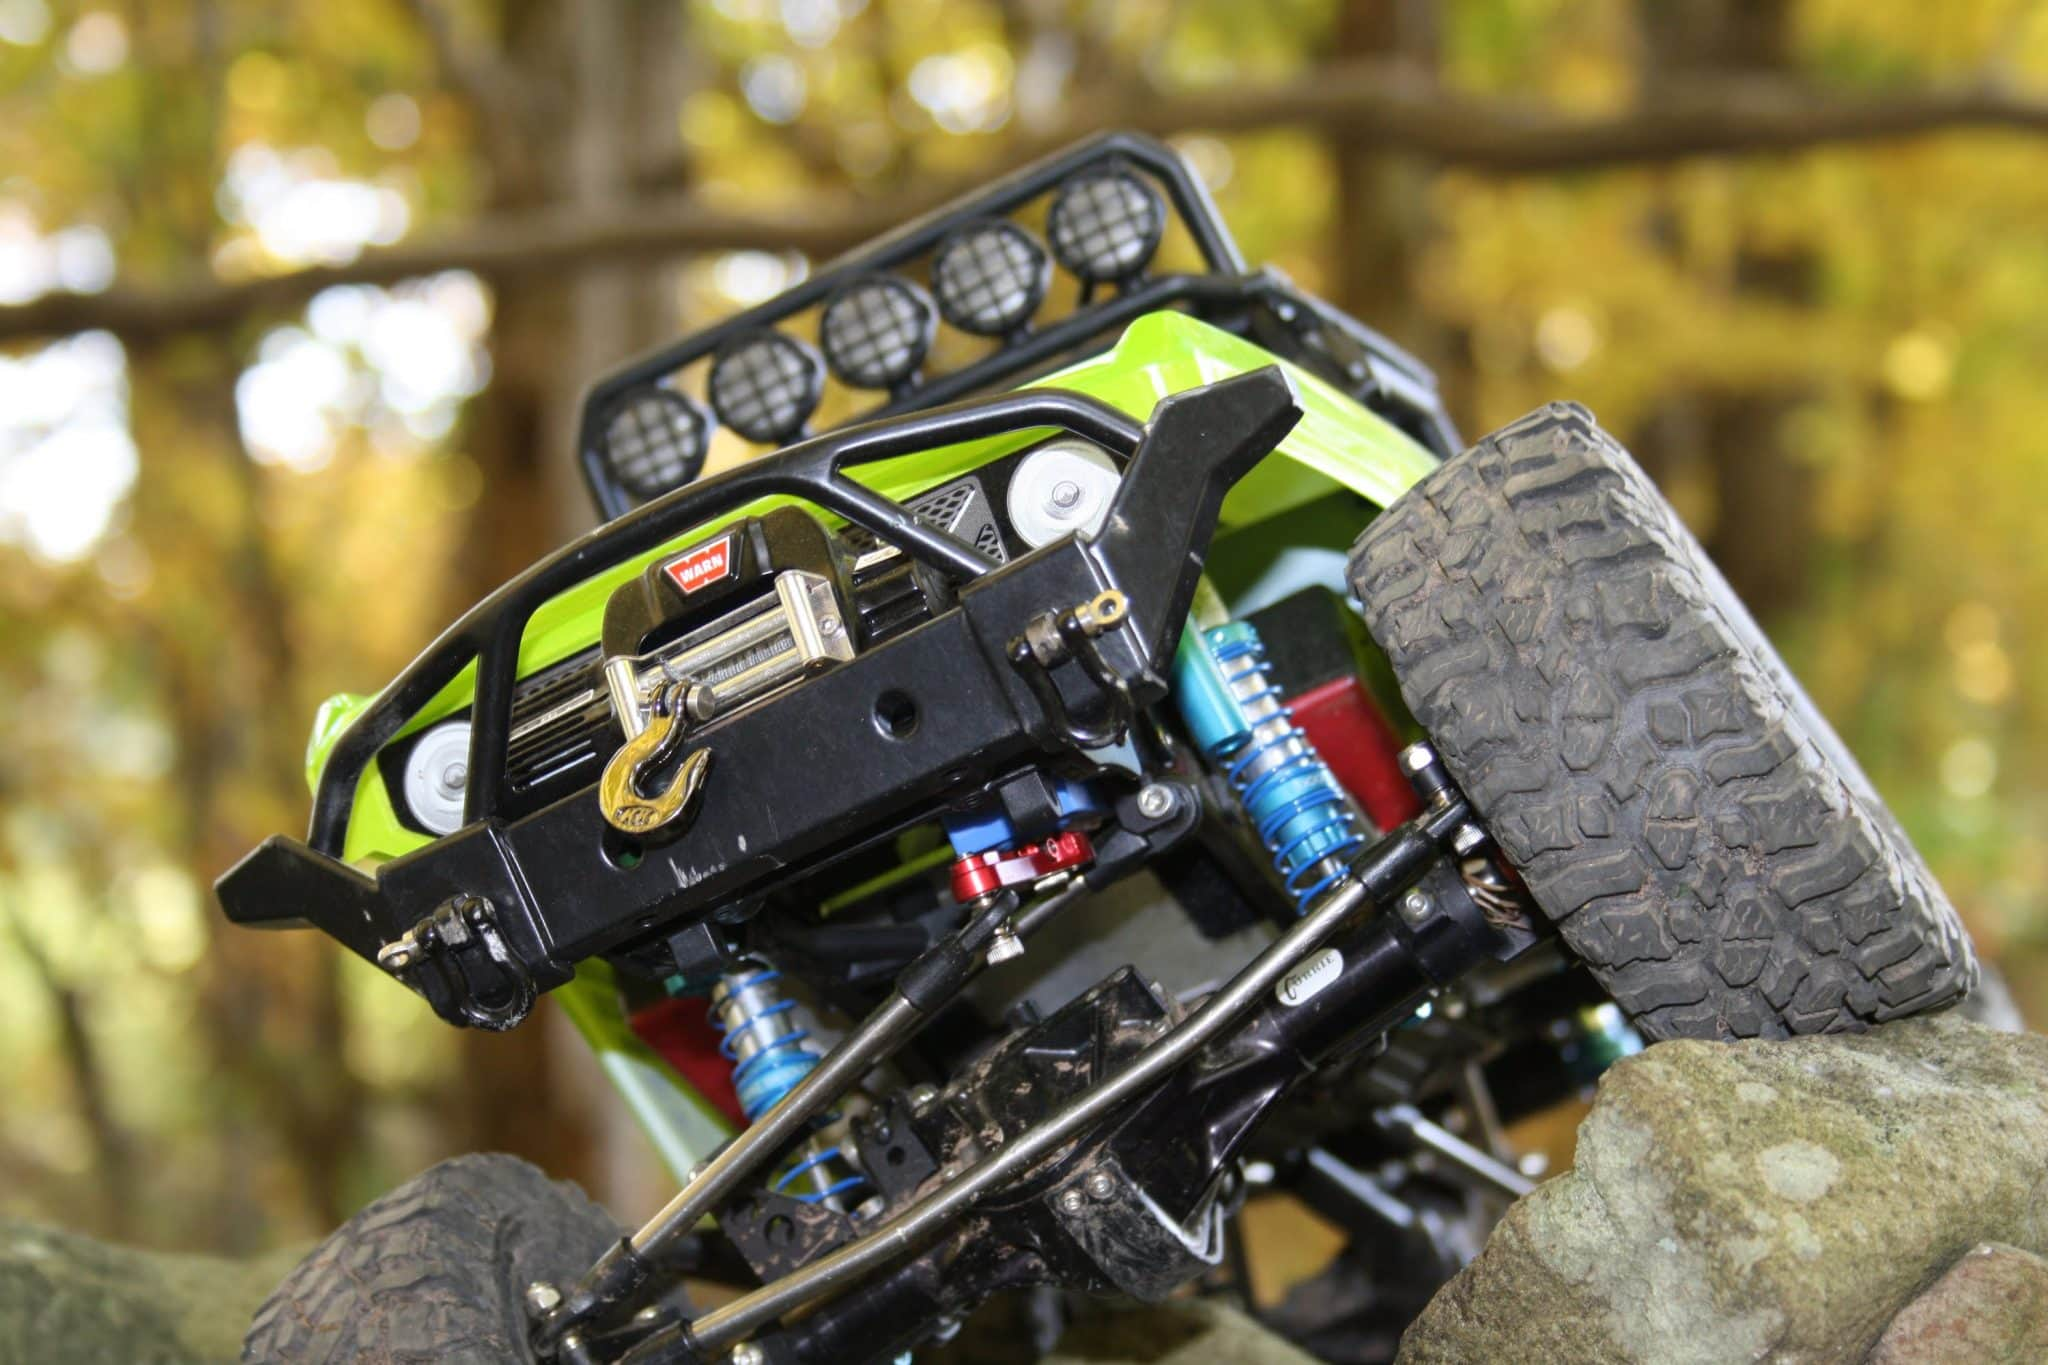 Upgrade Your Axial SCX10 Deadbolt With These Overview Videos